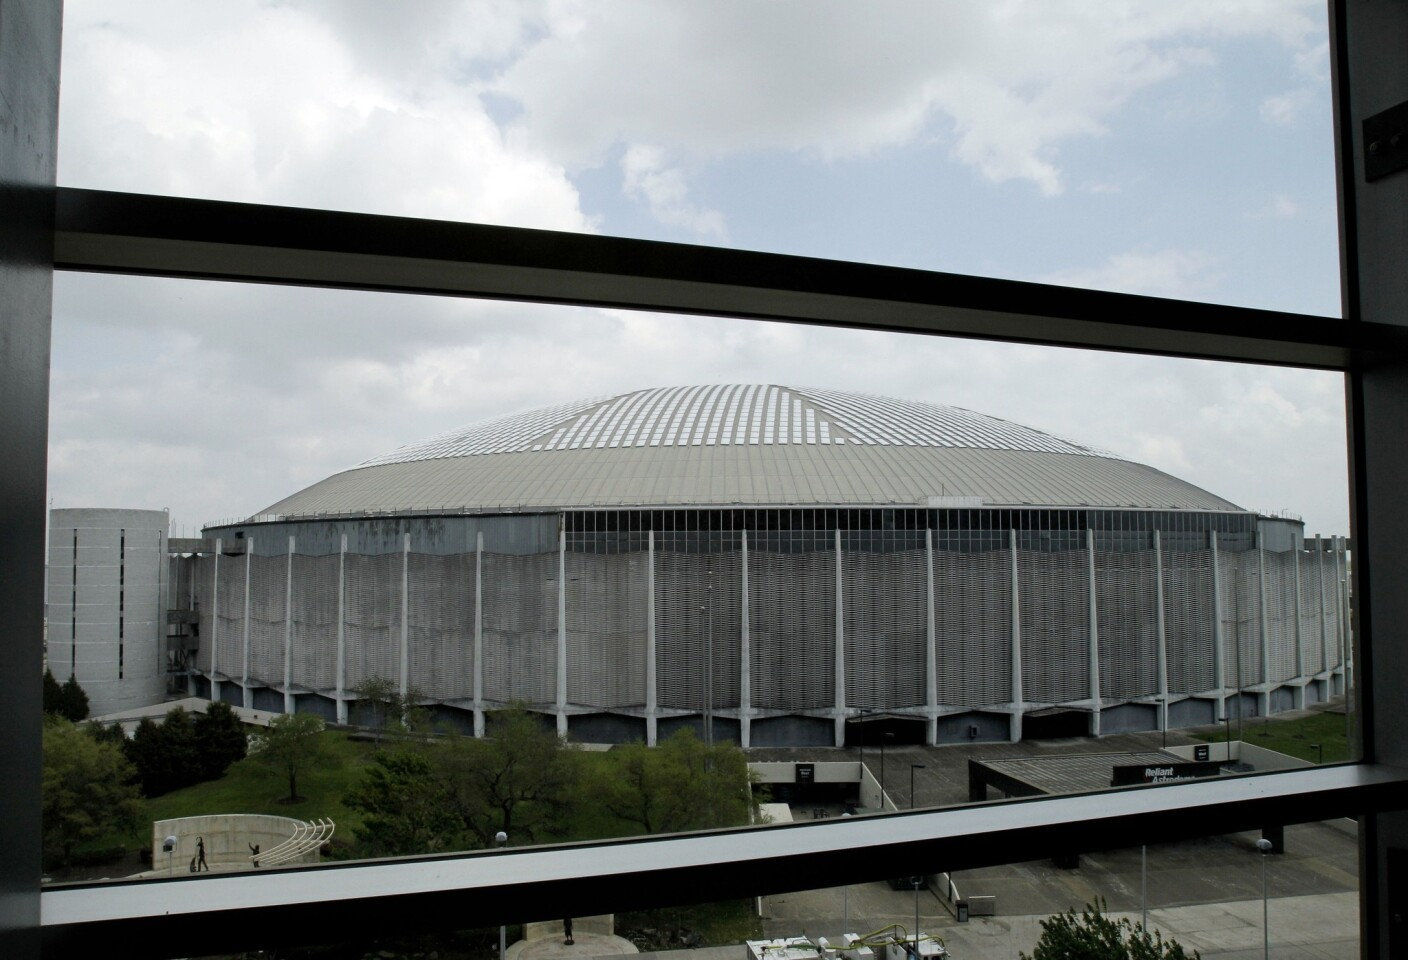 """Houston's Astrodome, once called """"The Eighth Wonder of the World,"""" is seen through the windows of the Club Level of Reliant Stadium."""